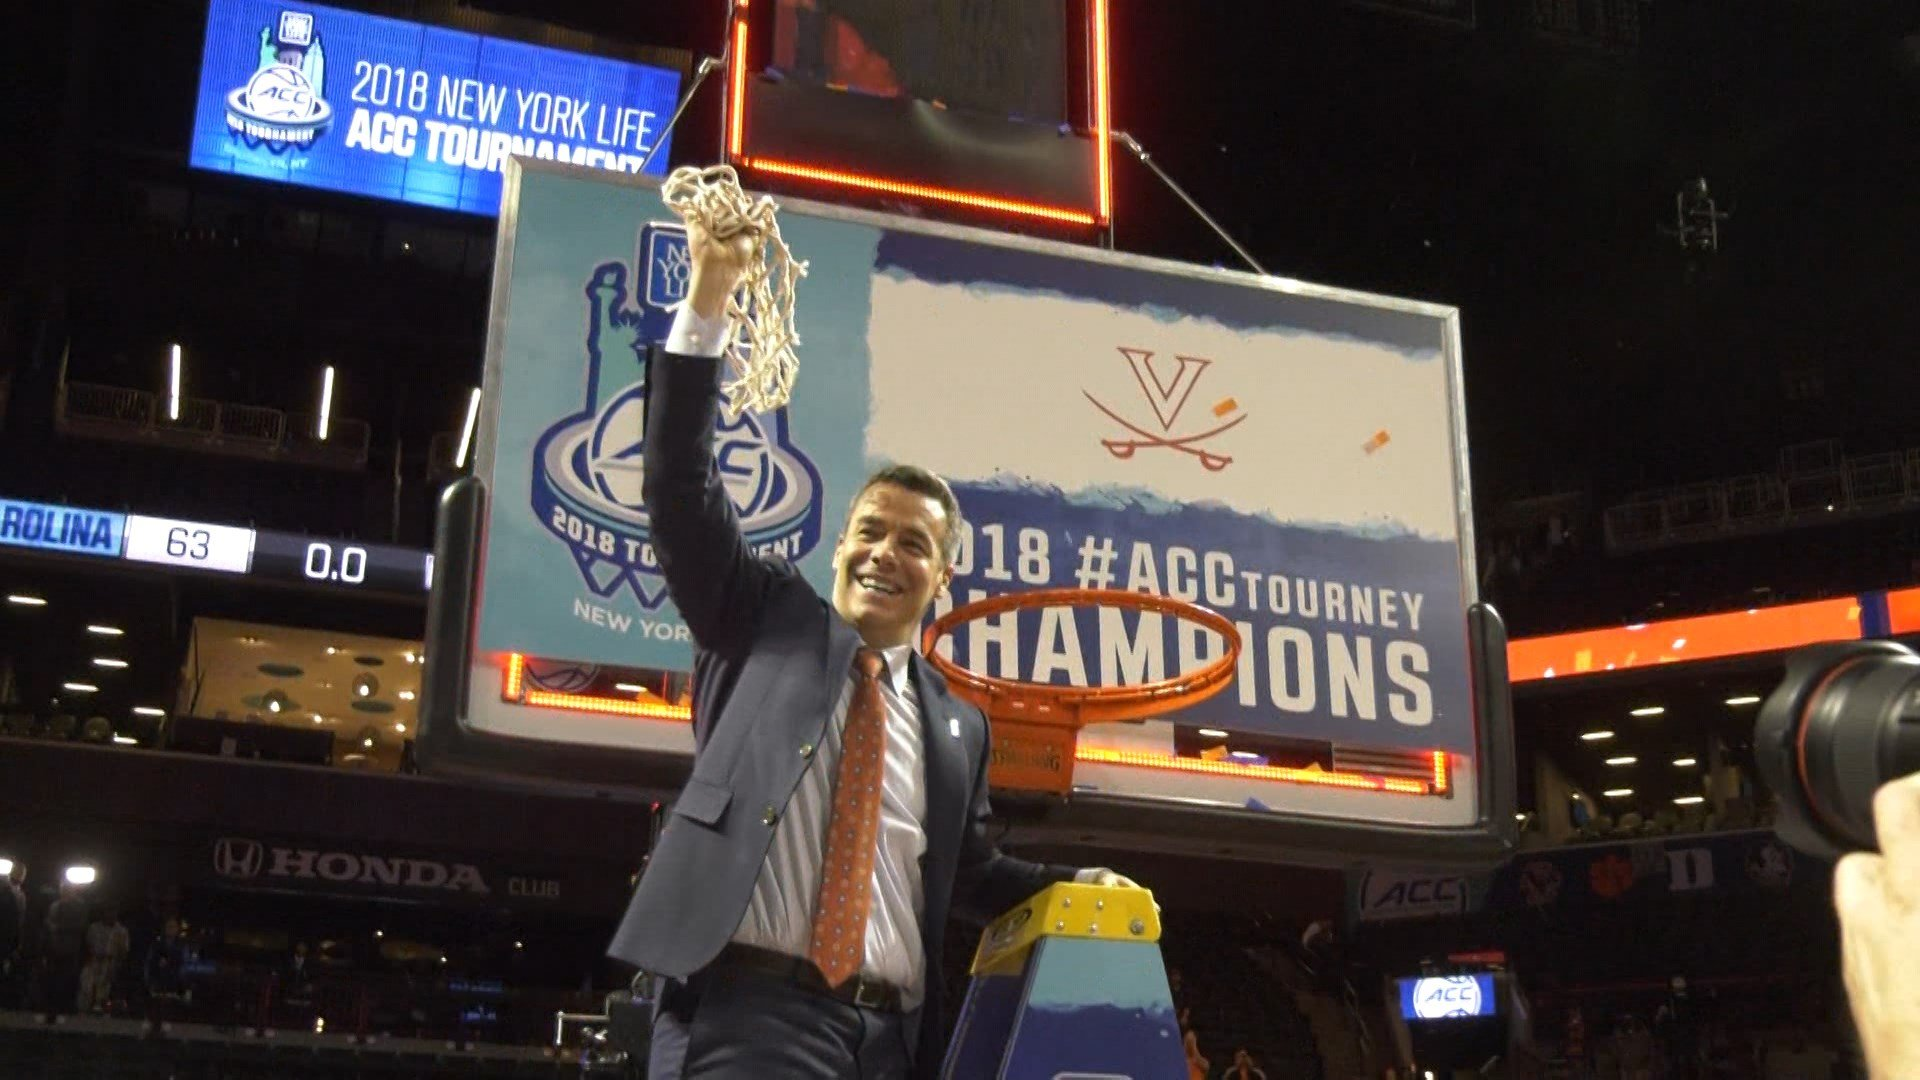 Bennett Led Virginia to an ACC championship